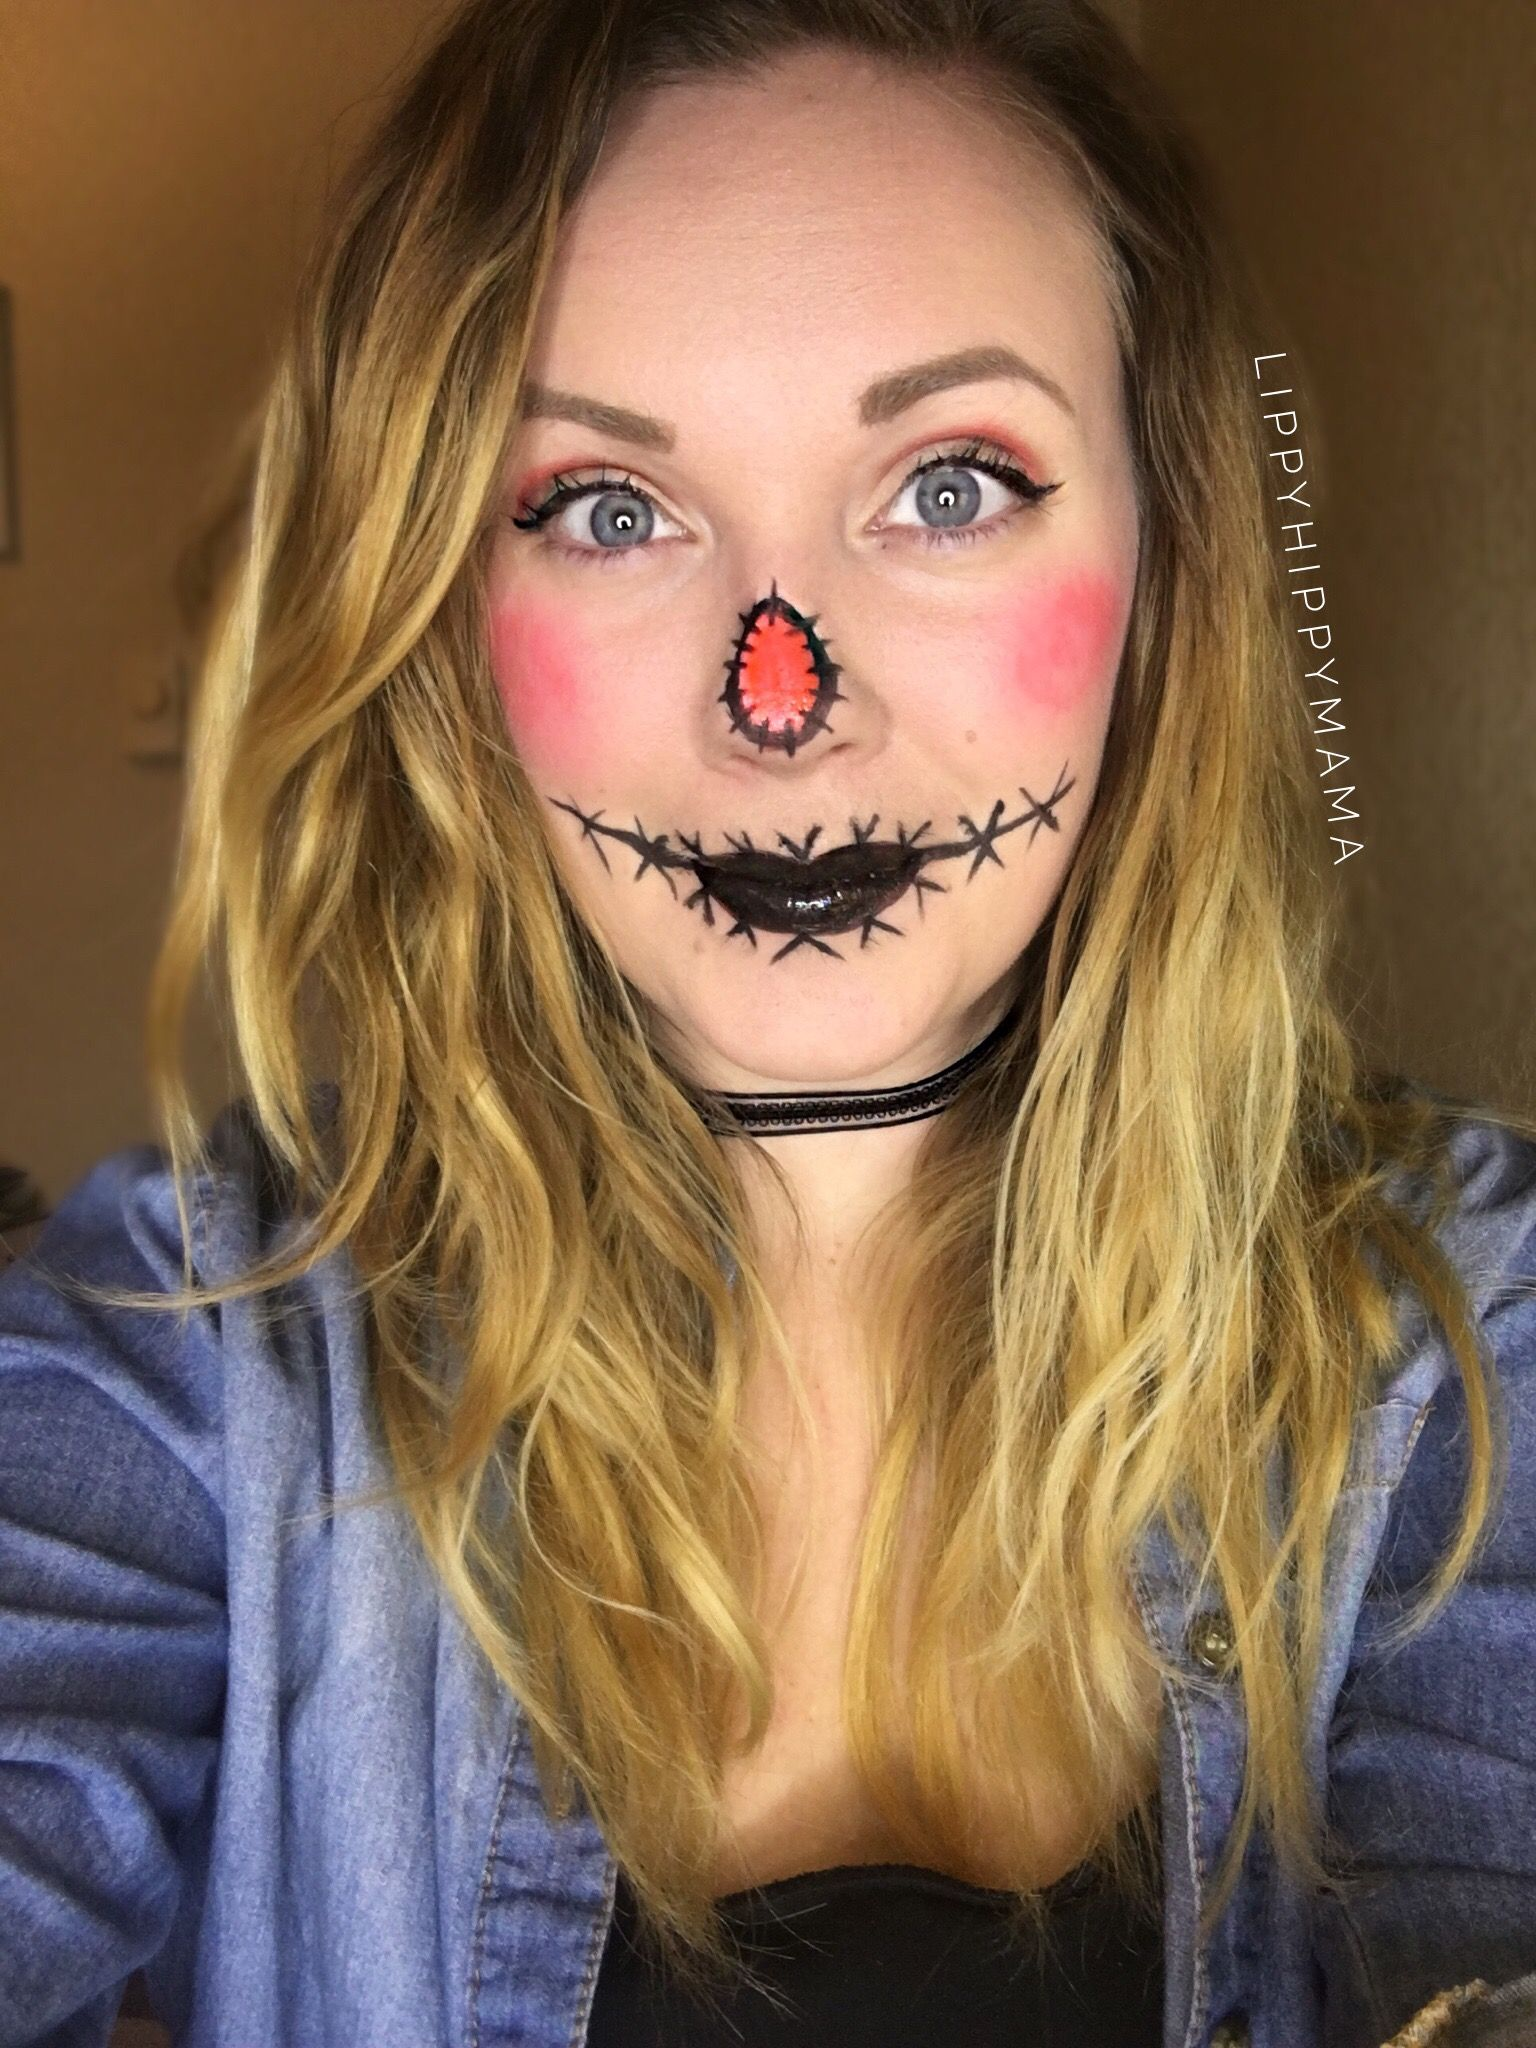 Here's my Scarecrow Halloween Look! FACE 👩🏼 Climate